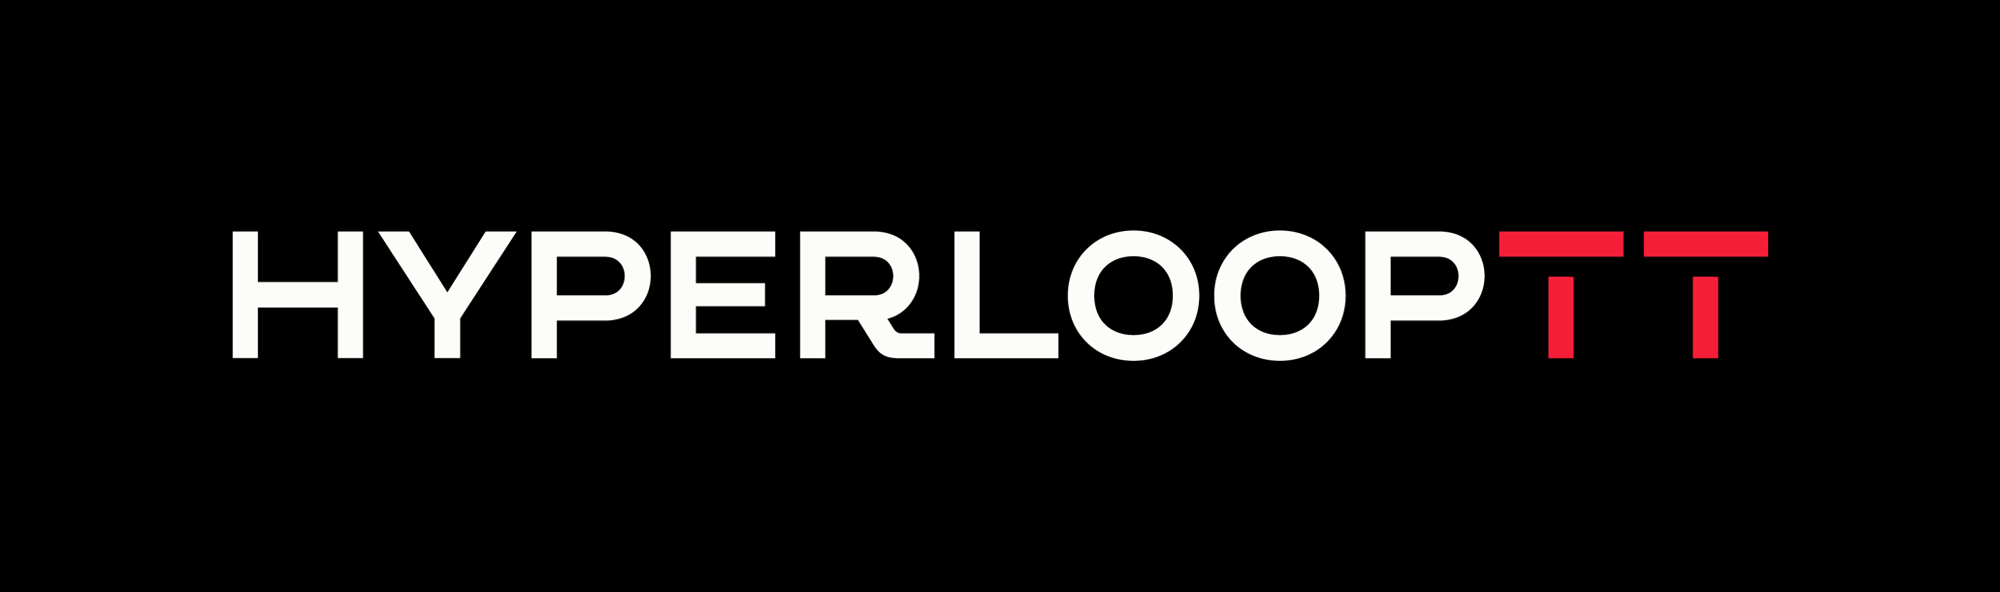 New Logo and Identity for HyperloopTT by Saffron